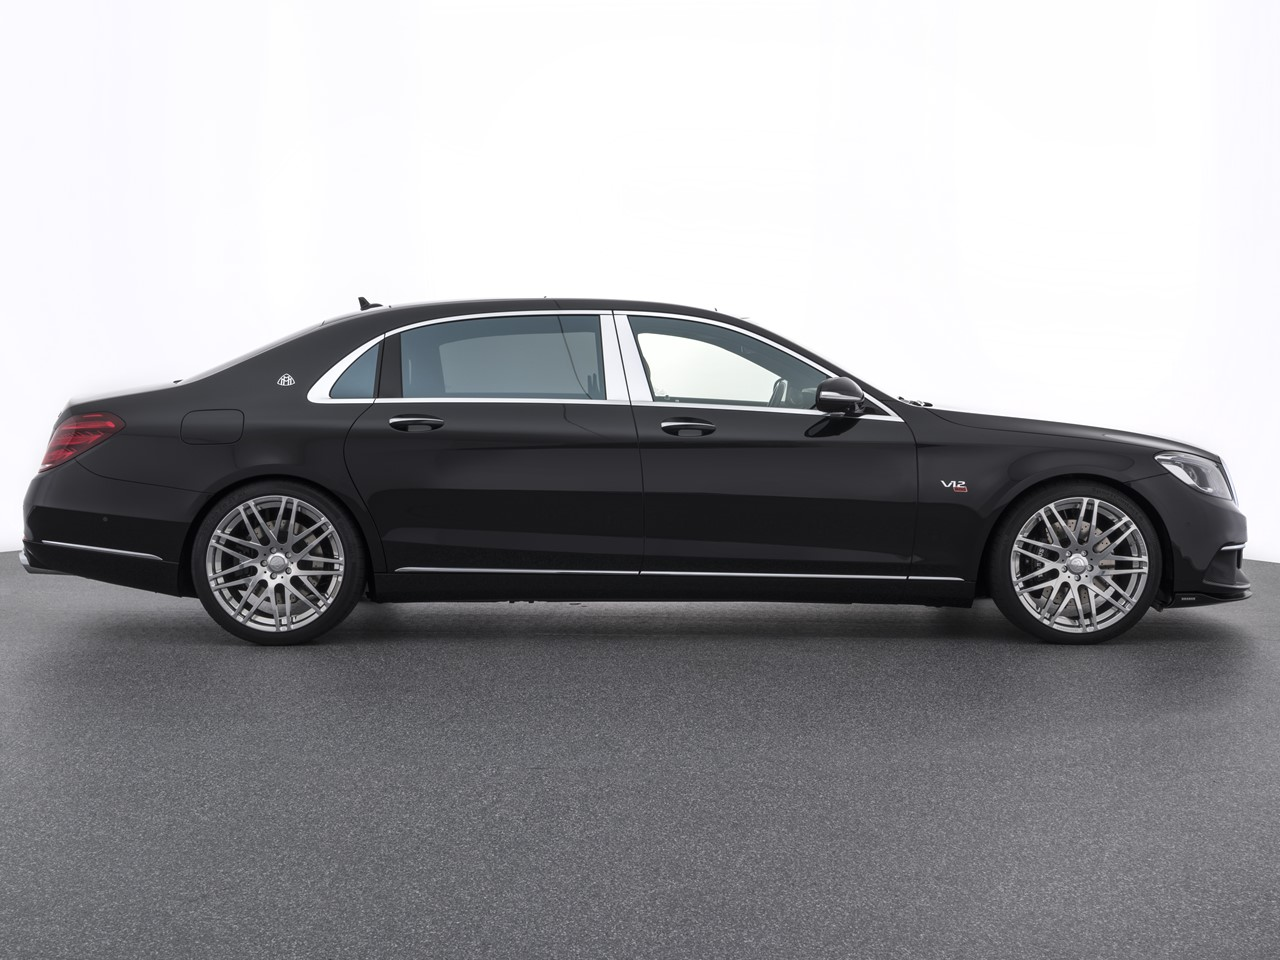 the uber athletic brabus rocket 900 6 3 v12 saloon how to